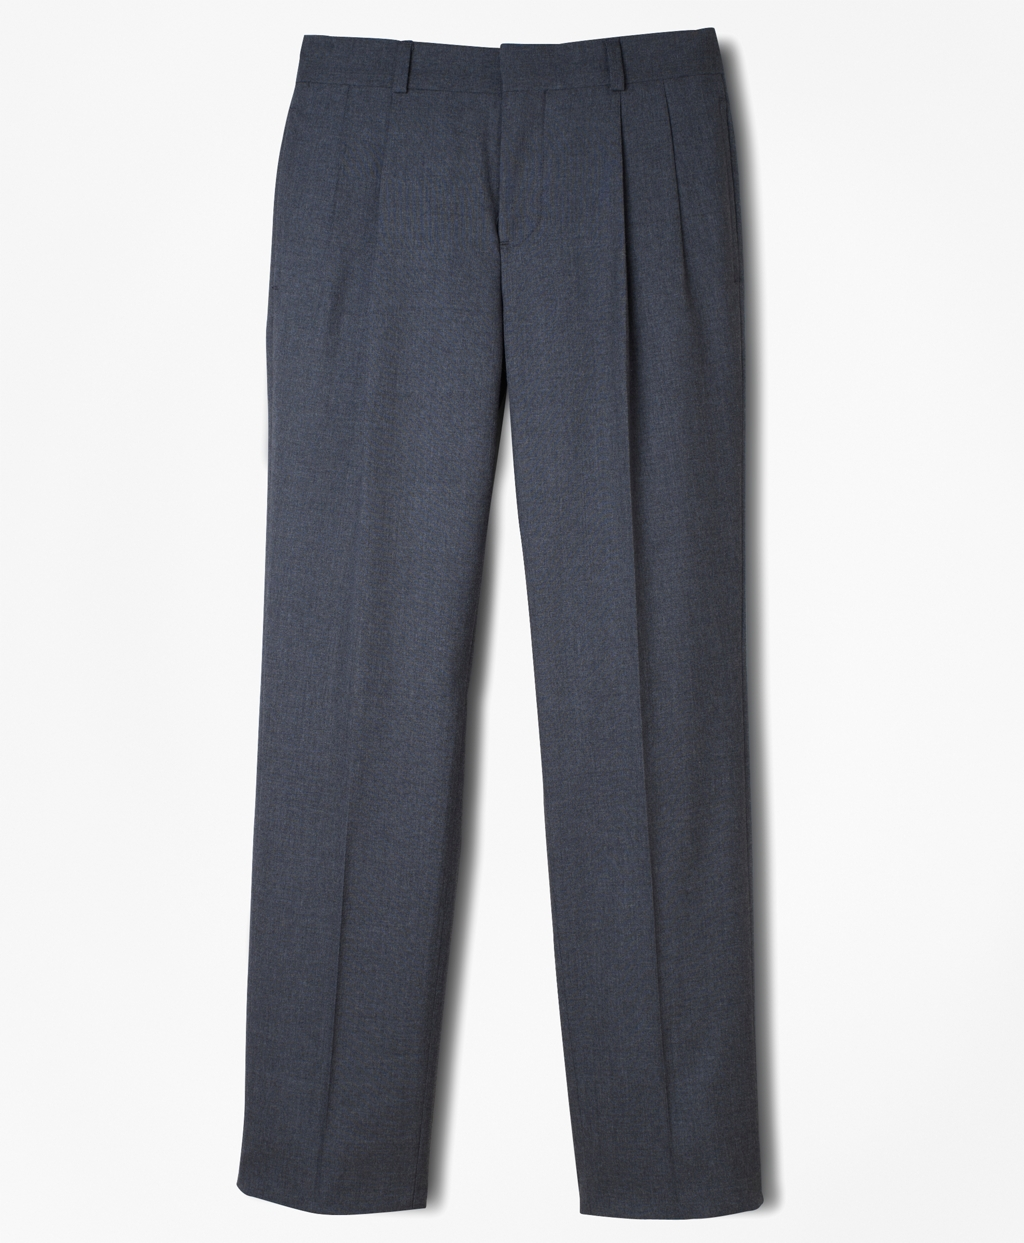 New Vintage Boys Clothing and Costumes Brooks Brothers Boys Boys Brooksease Junior Pleat-Front Suit Pants $88.00 AT vintagedancer.com